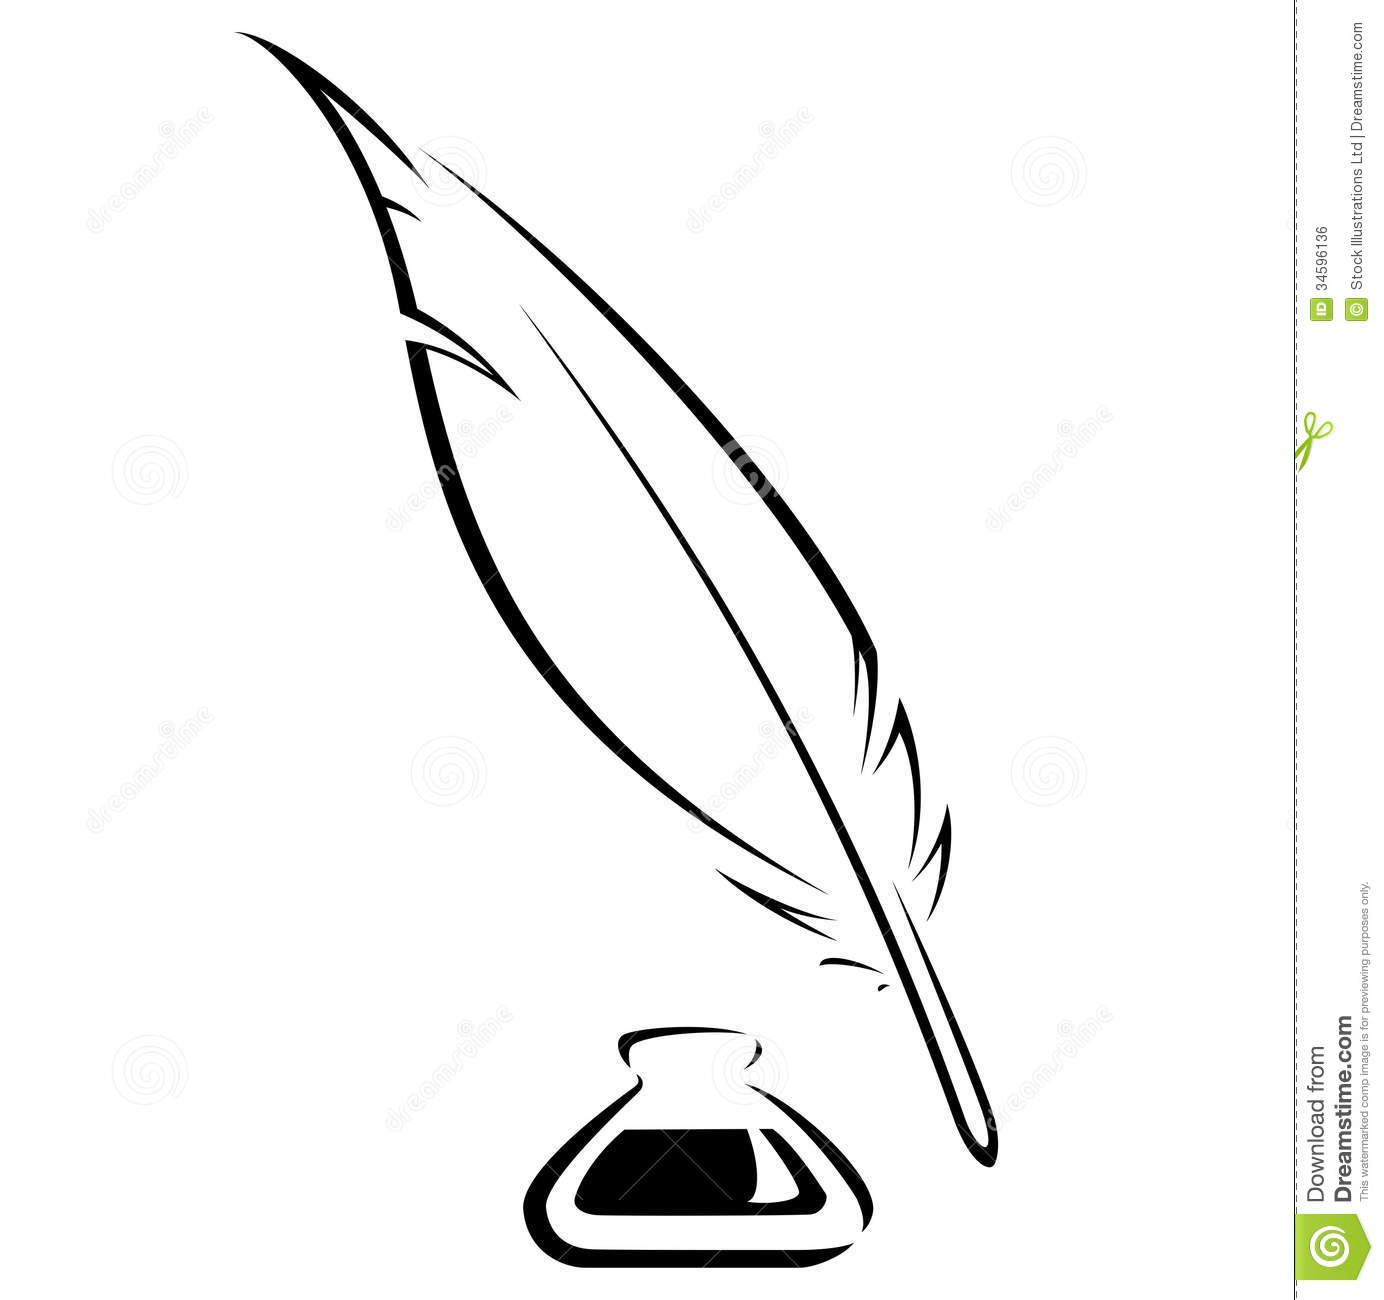 Quill And Ink Pot Black Vector Icon Royalty Free Stock Image   Image